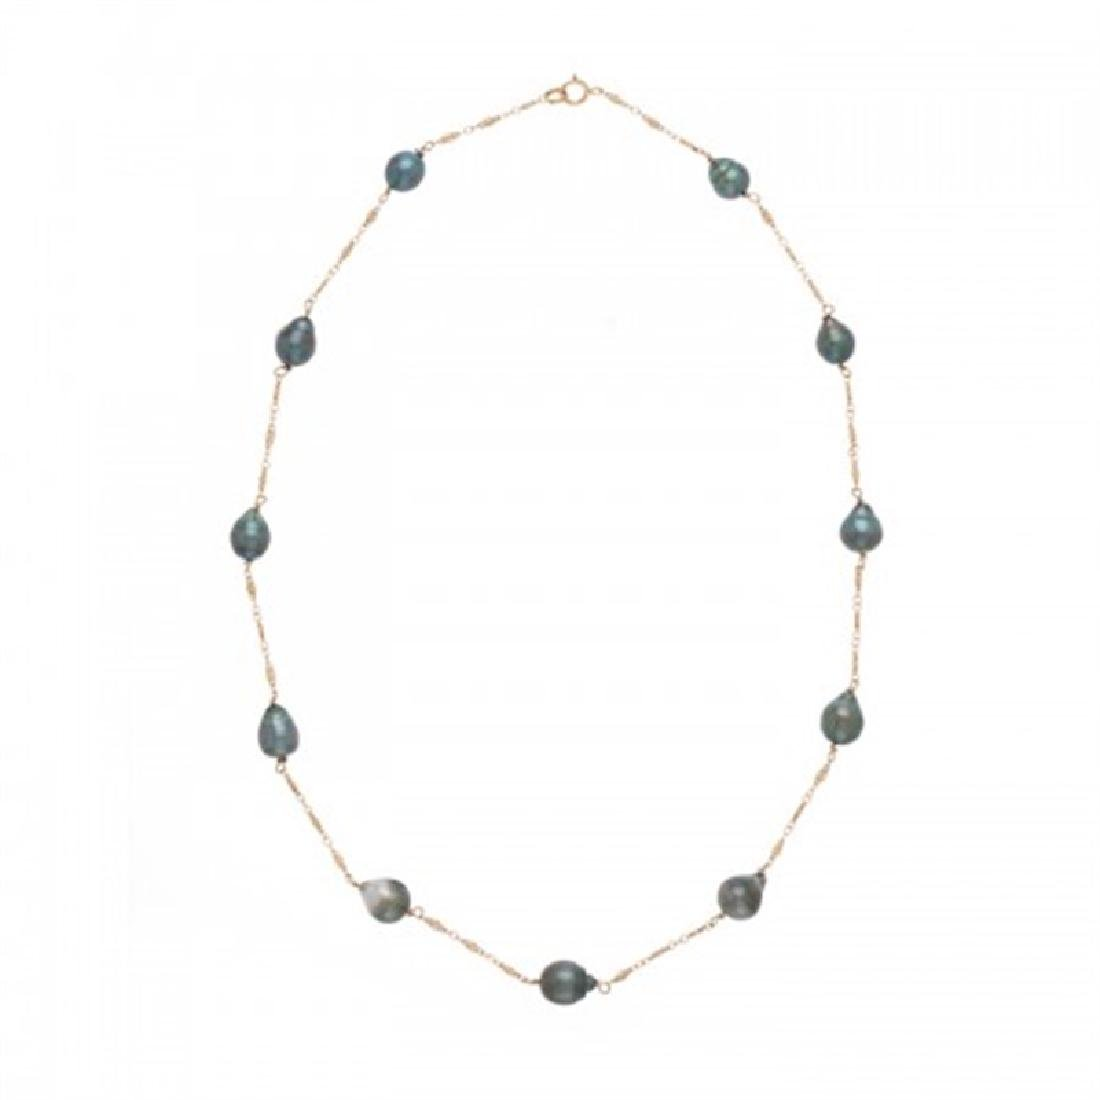 7.5-9.0mm Tahitian Black Tin Cup Pearl Necklace